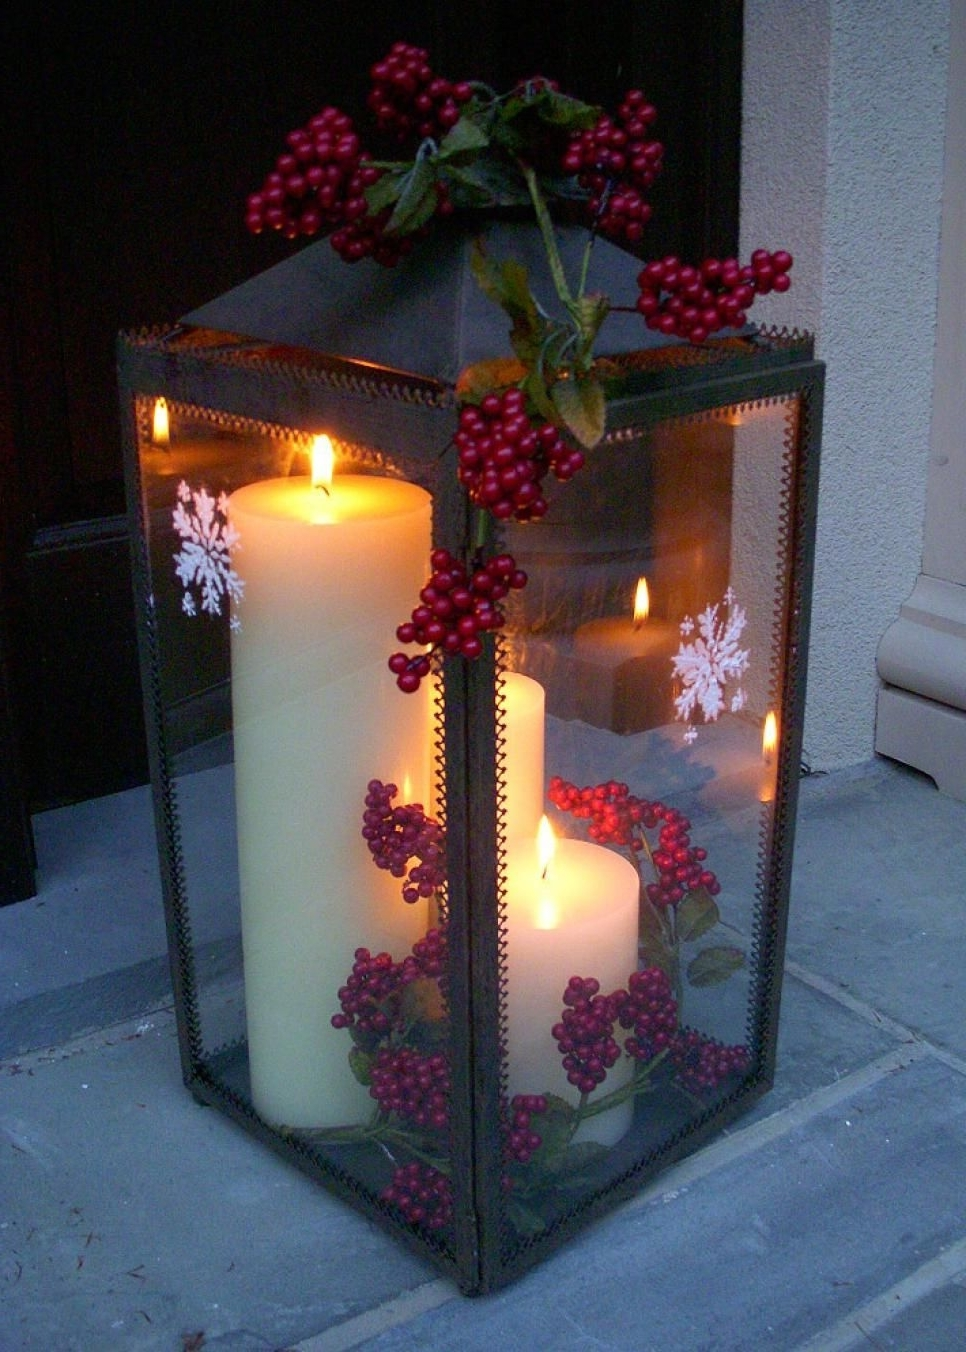 Newest Outdoor Holiday Lanterns Intended For 35+ Crafty Outdoor Holiday Decorating Ideas (View 16 of 20)